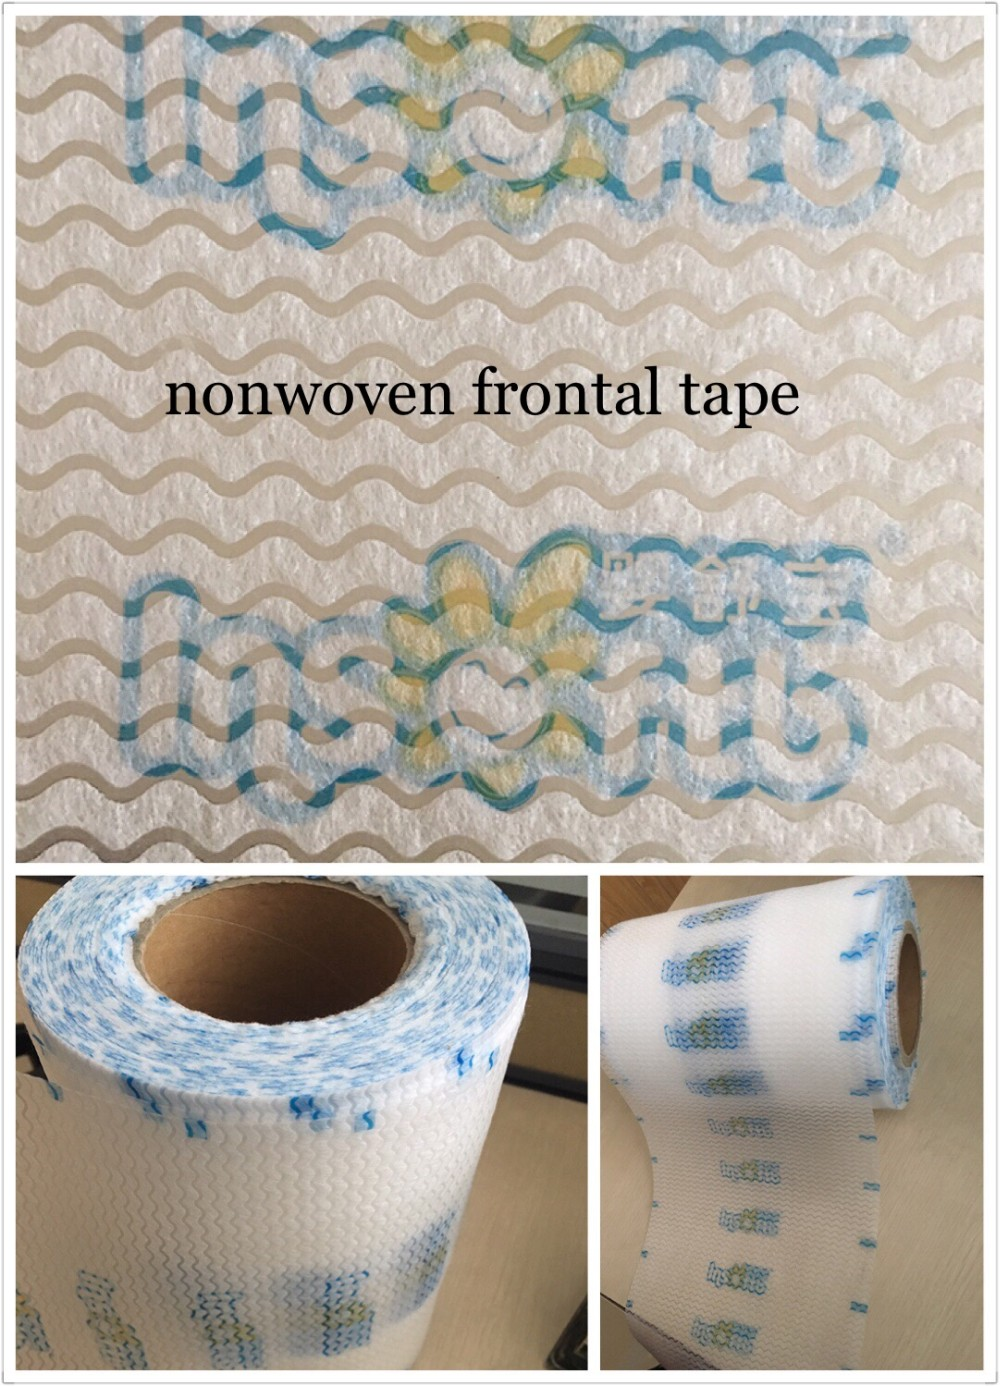 New design softer breathable Raw Matericals Nonwoven frontal tape for diaper